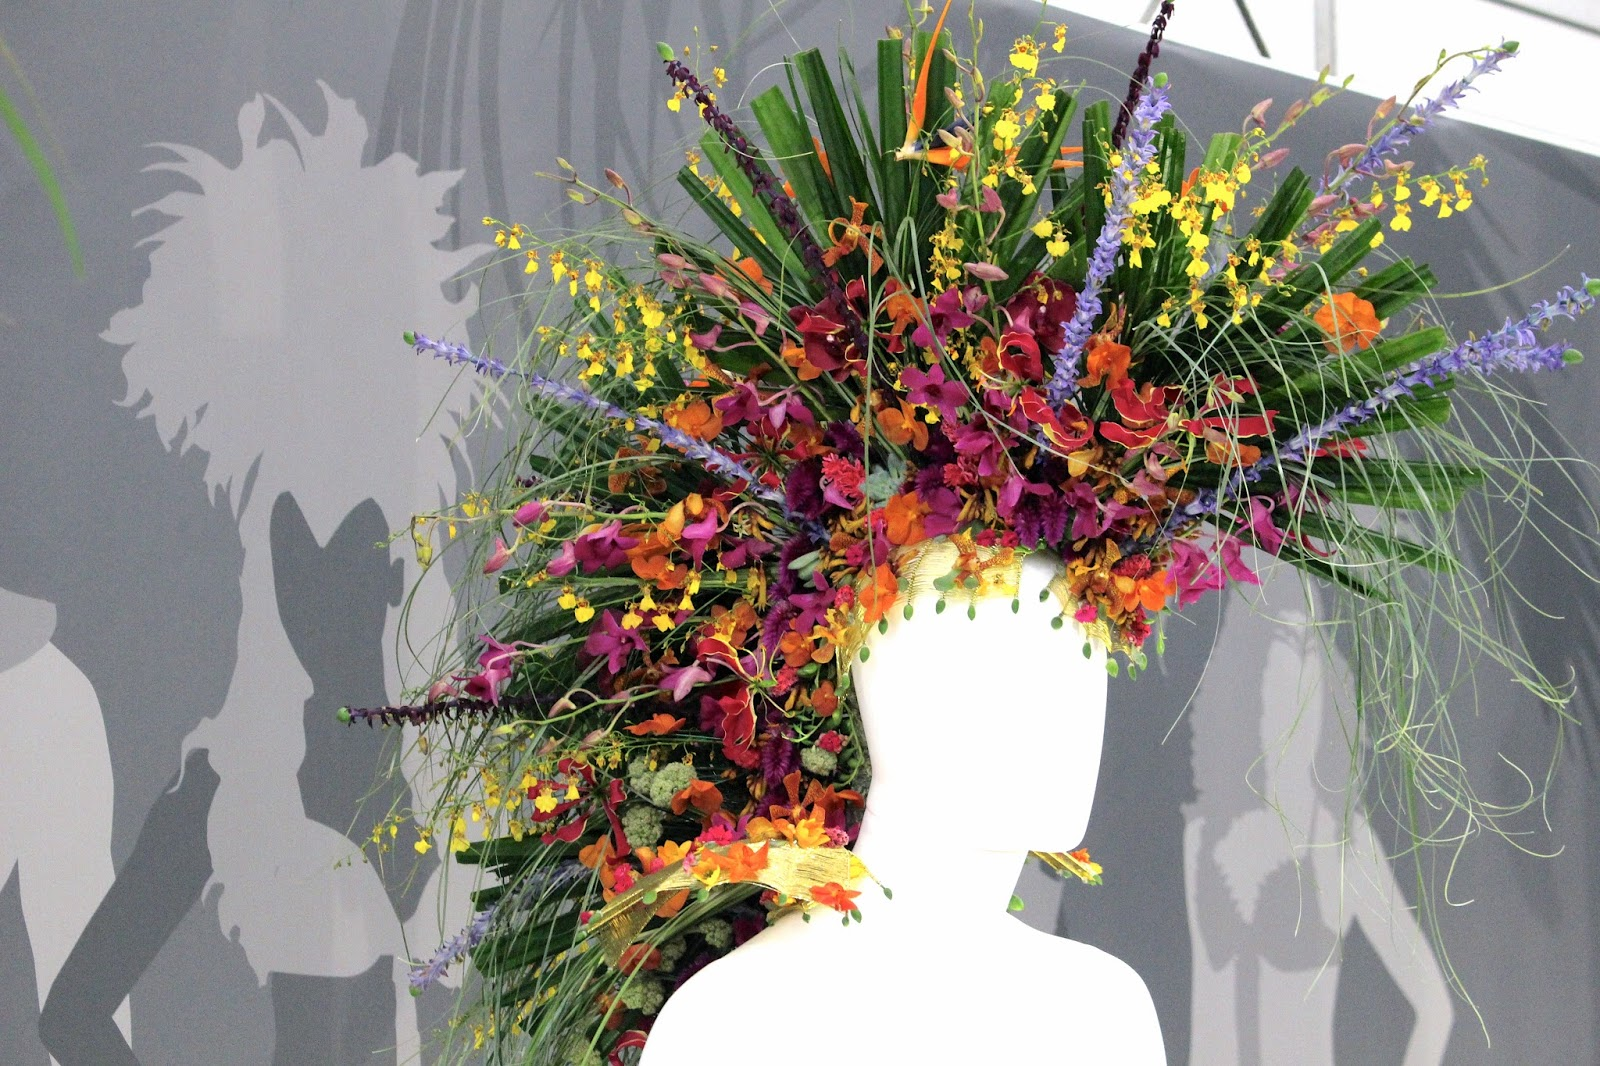 Emily Smith Bath College Chelsea Flower Show